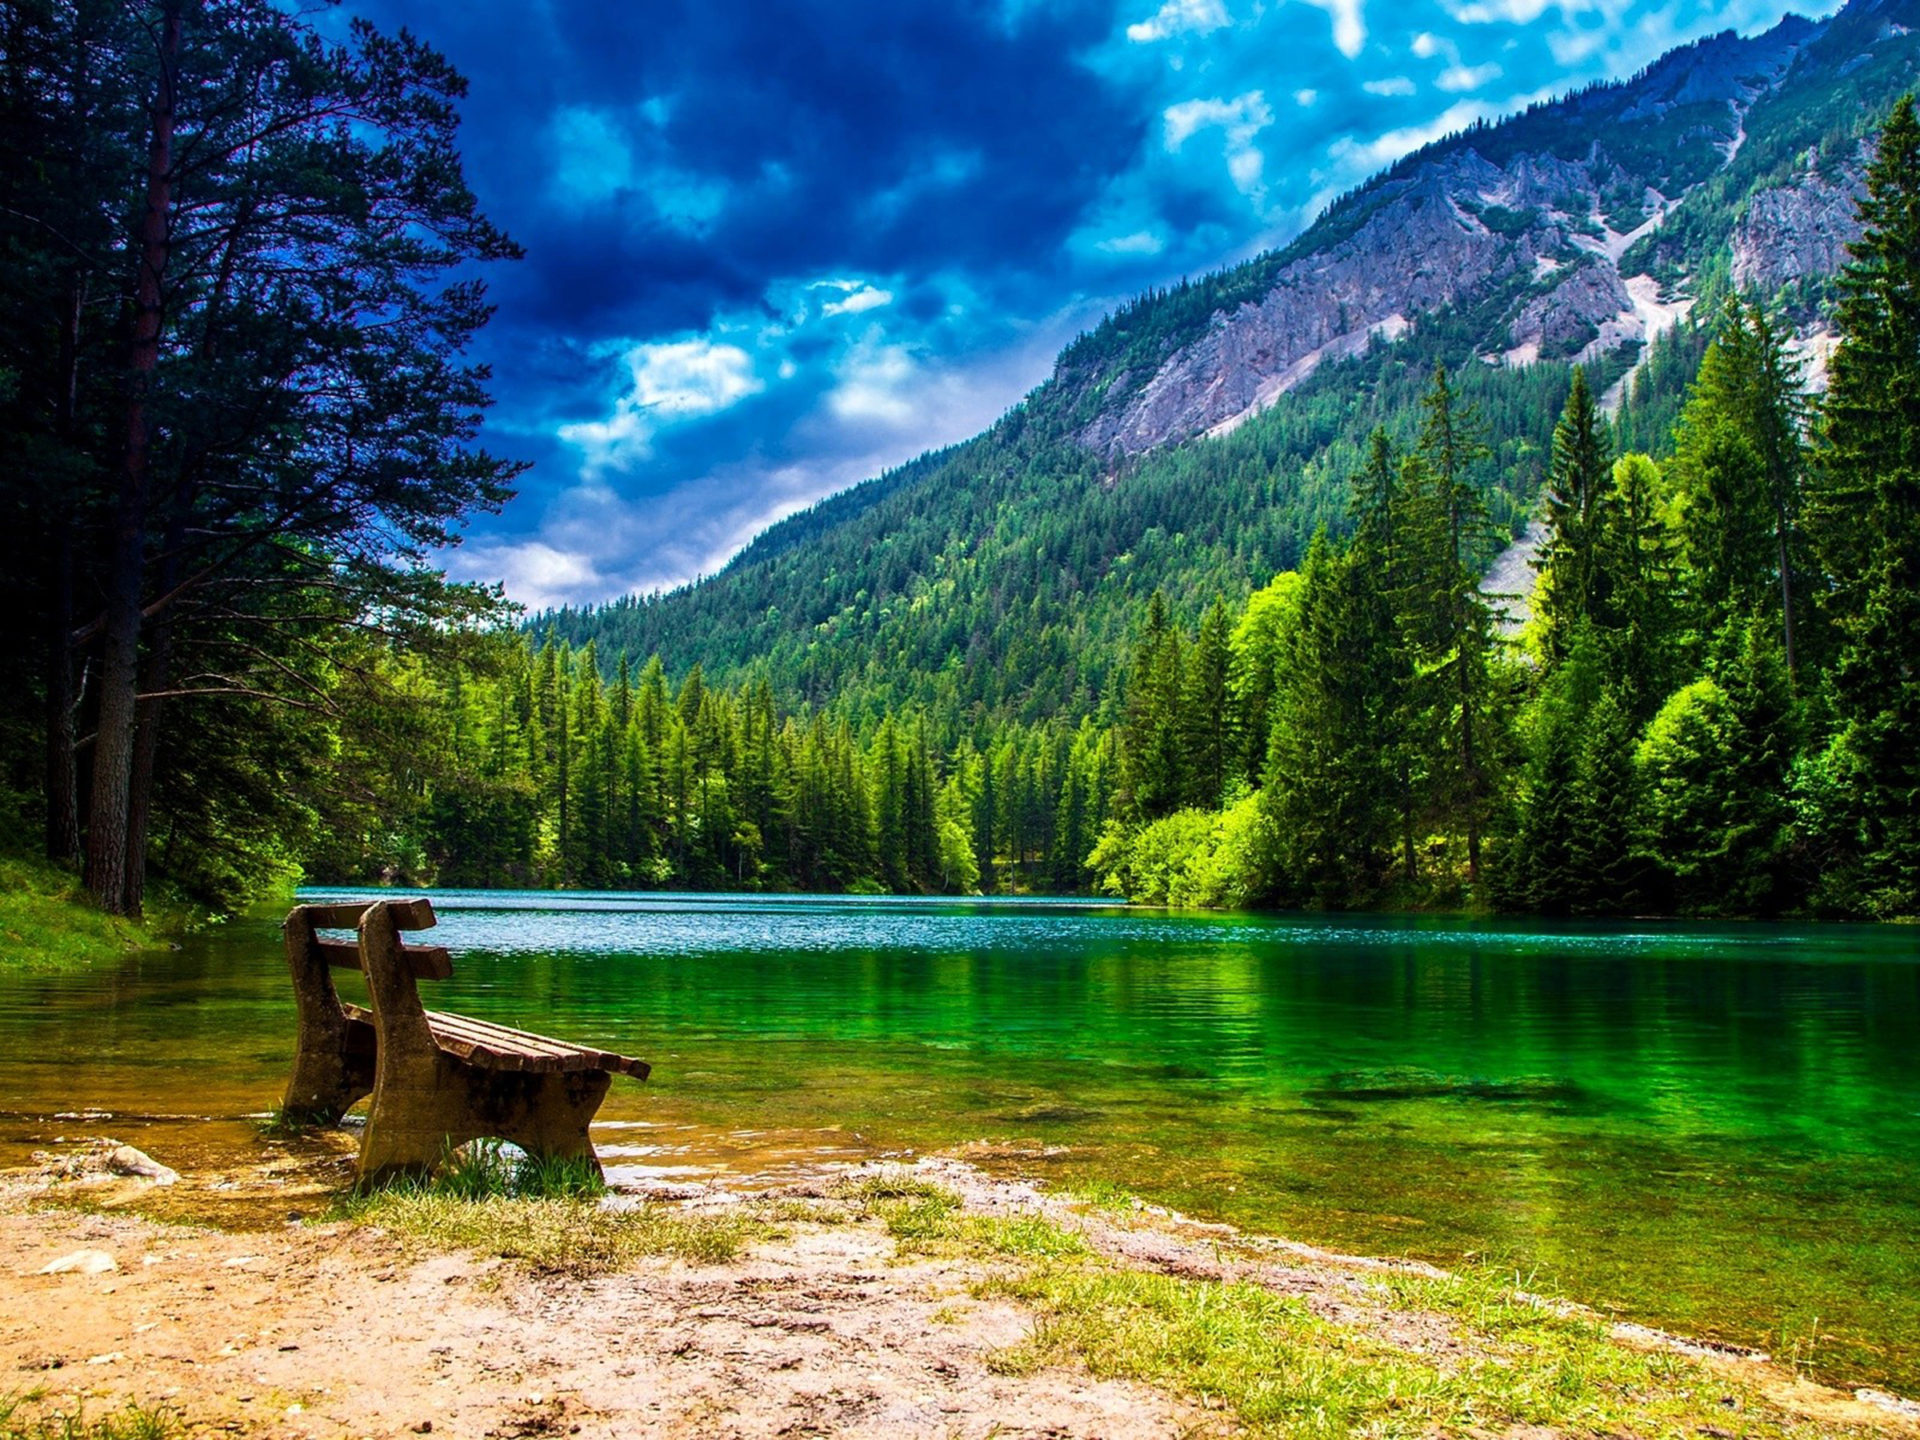 Free Fall Wallpapers Desktop Wonderful Mountain Landscape With Green Pine Forest Green